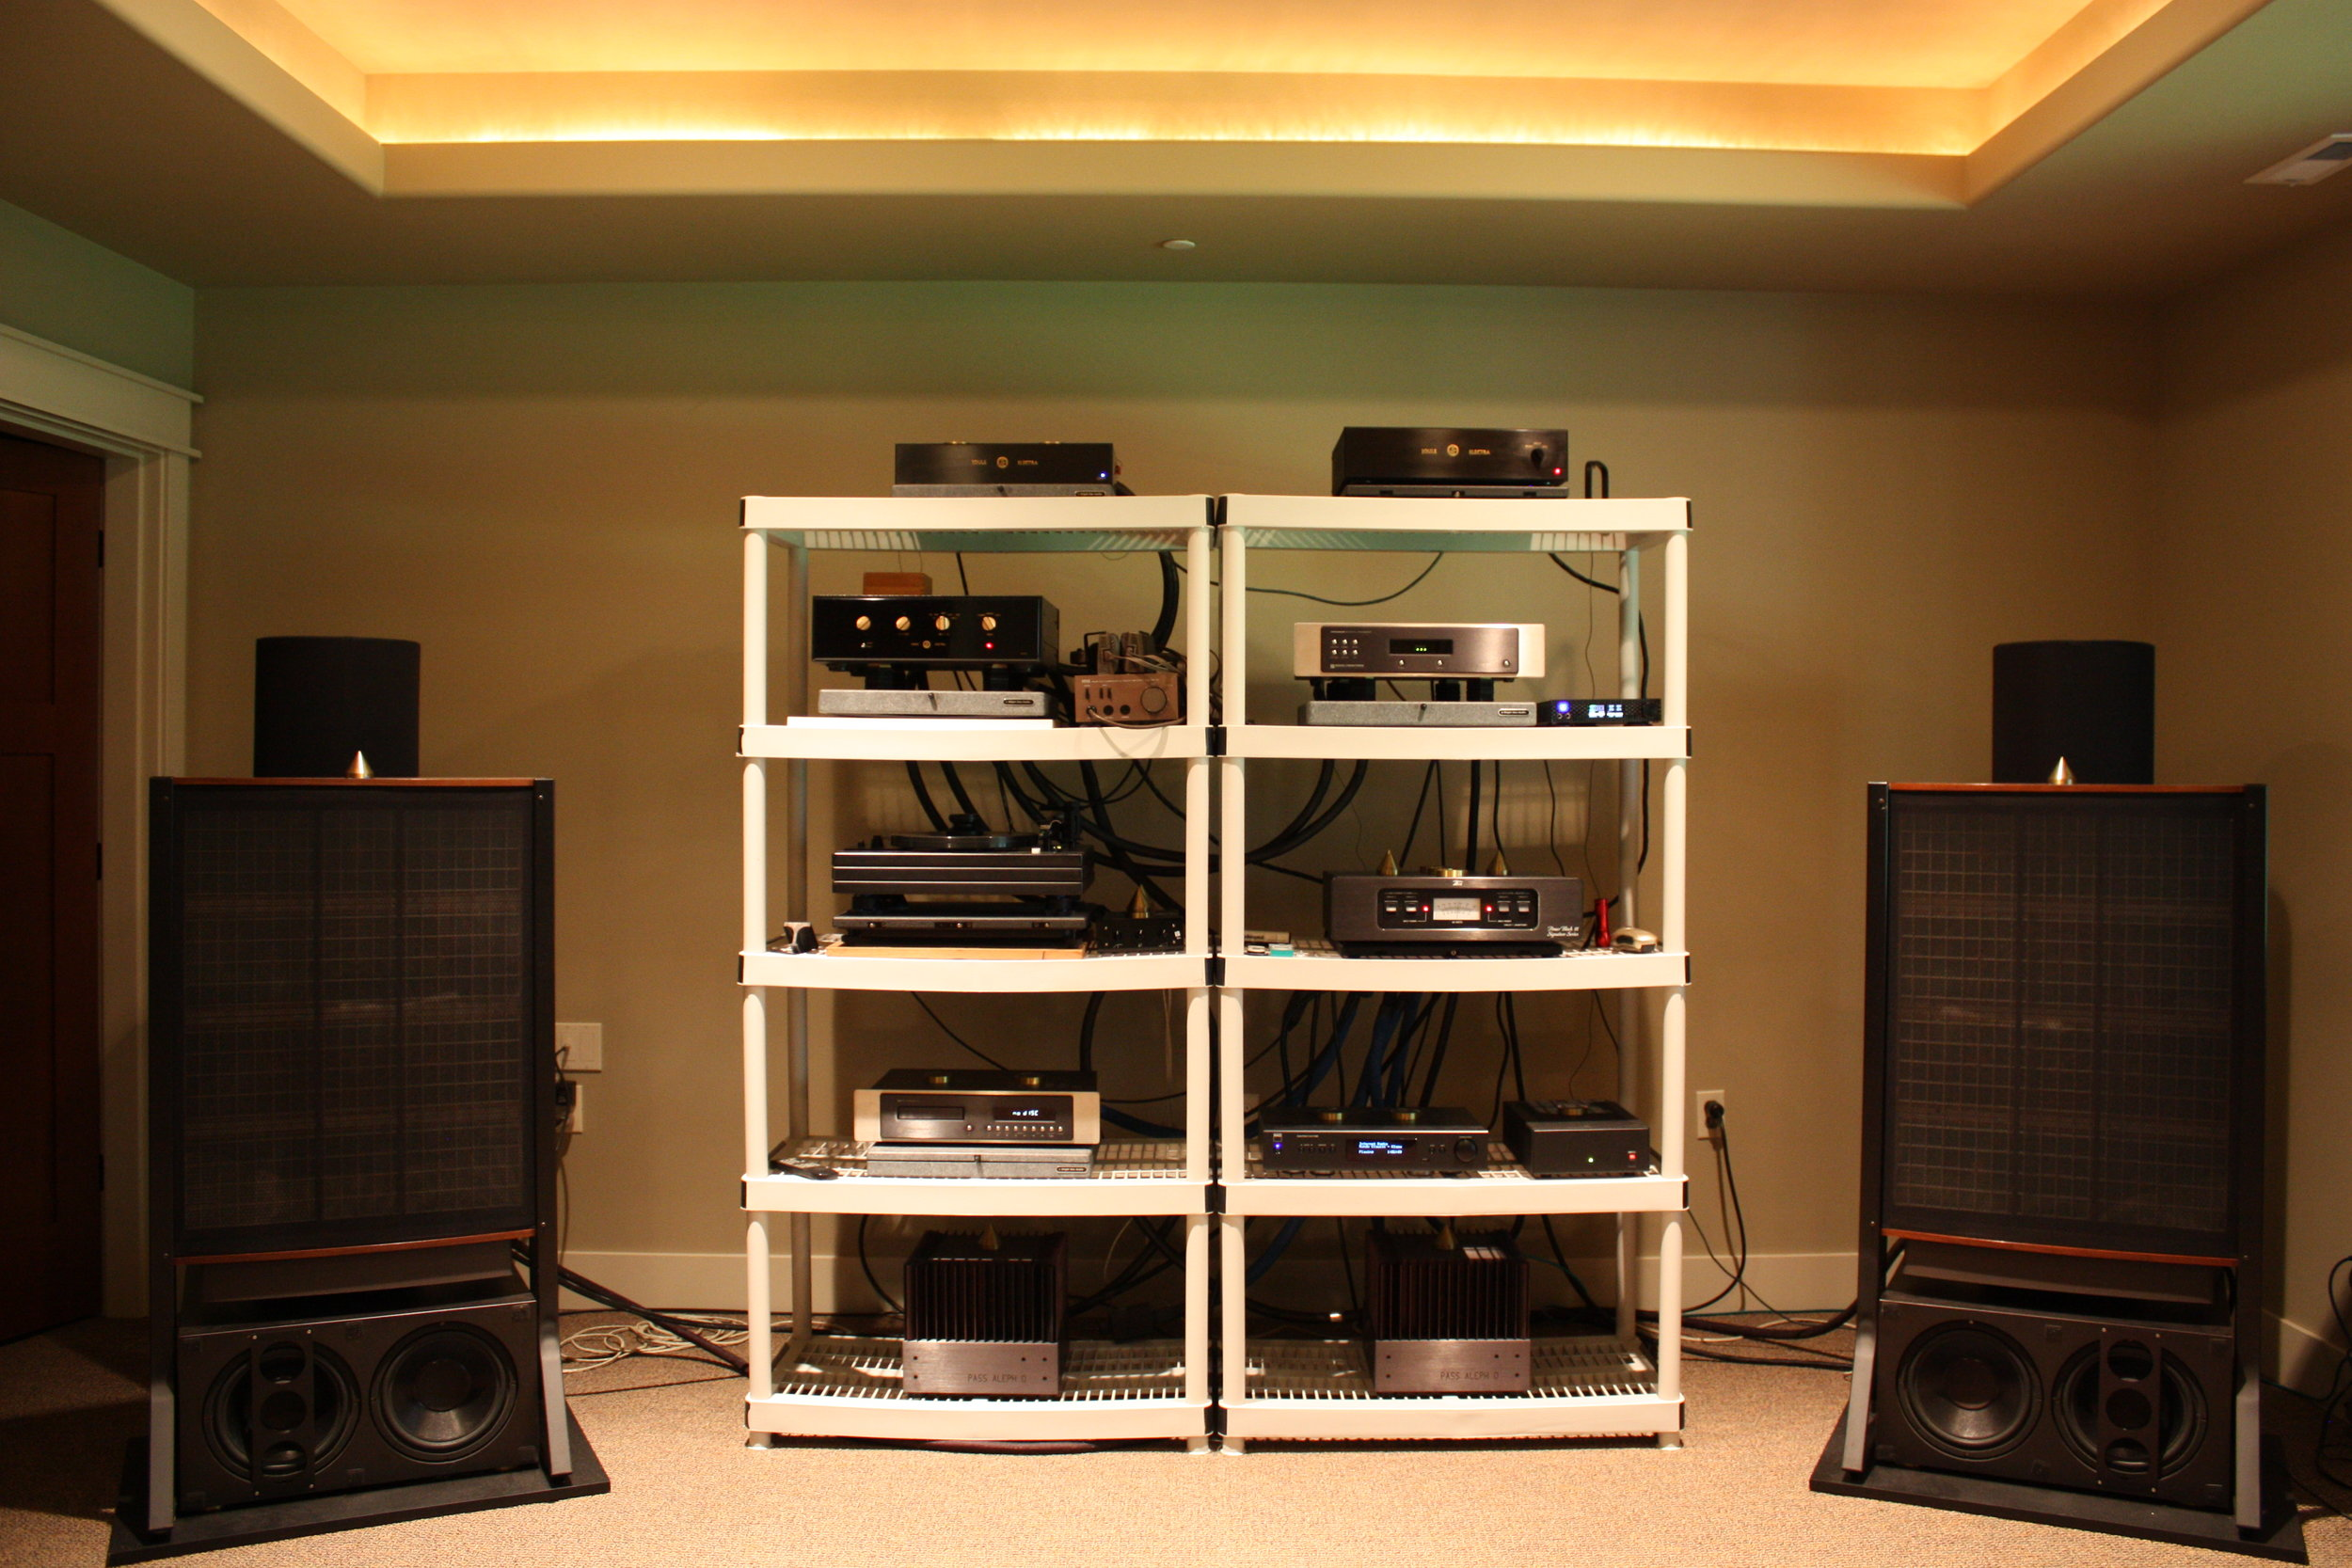 Dr. Jay's Music Room System : Joule Electra LA-150 MK-I Preamp, Joule Electra OPS-1 MK-III Phono Line Stage, Joule Electra Phono Stage Power Supply, Sonic Frontiers, SFT1 Transport with I2S, Sonic Frontiers Processor 3 DAC, Sonic Frontiers Power Supply, Well-Tempered Turntable with Transparent Audio upgrades, Van den Hul Frog phono cartridge with Hovland Music Groove cartridge cable, Nelson Pass Aleph 0 monoblock amps x 2, Mytek Brooklyn DAC, NAD C446 Digital Media Tuner, Stax Signature Lamba Pro Headphones, Quad ESL-63 Electrostatic speakers on Arcici stands, Electrostatic Bass Traps, Entec L2-F20 Subwoofers, Tice Signature III Power Block conditioner, Cables: Aural Symphonics interconnects and power cords, 100 Amp dedicated service panel. HOLY COW.